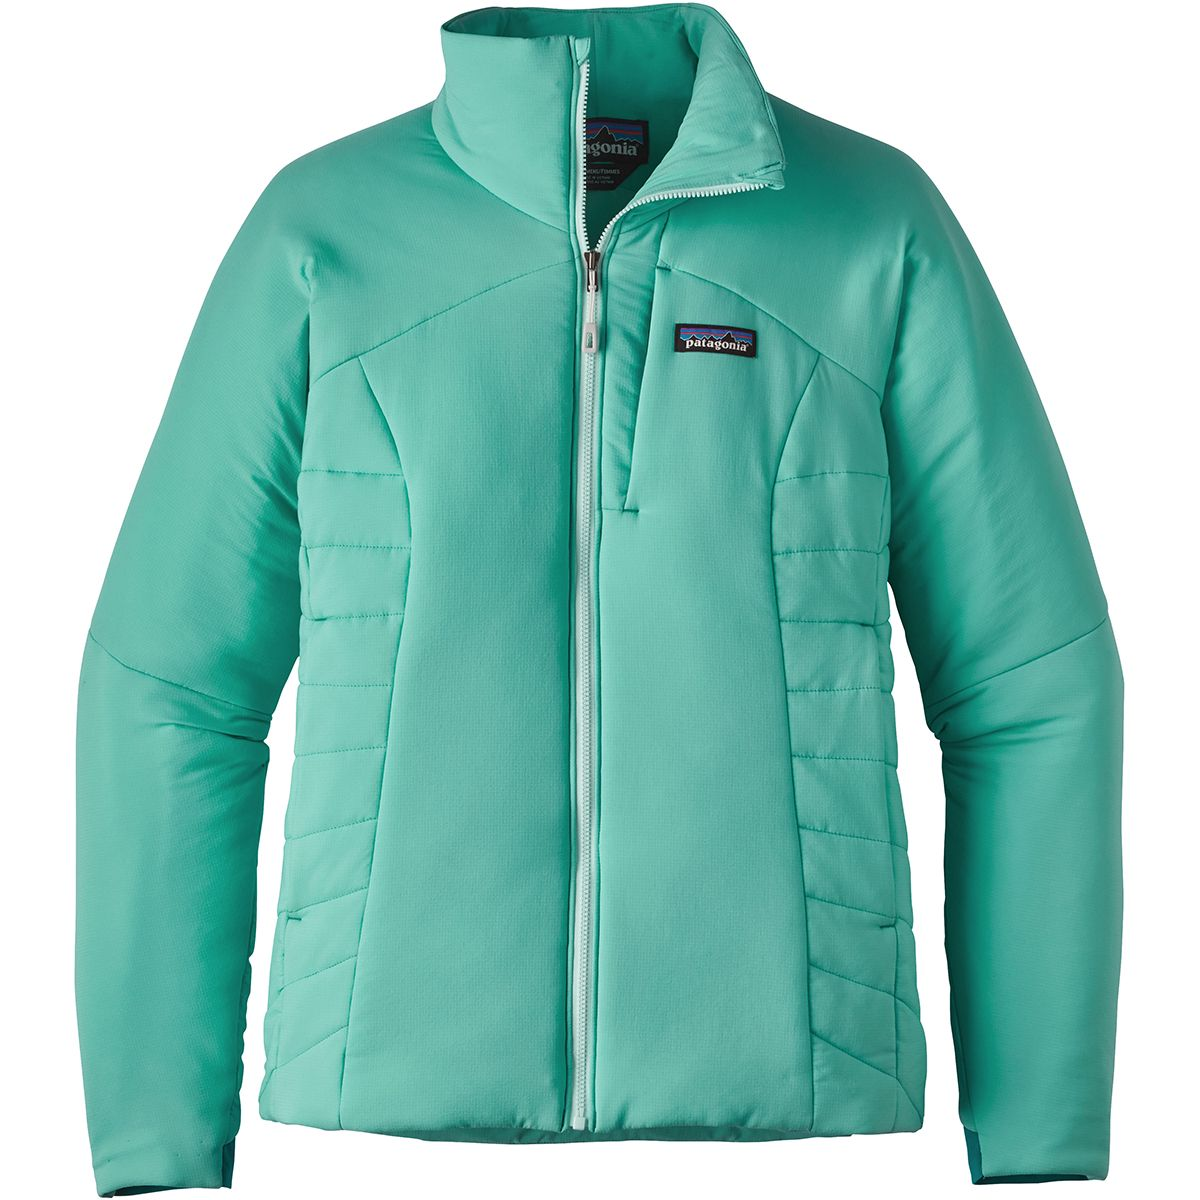 Patagonia Damen Nano-Air Jacke (Größe XL, Blau) | Isolationsjacken > Damen